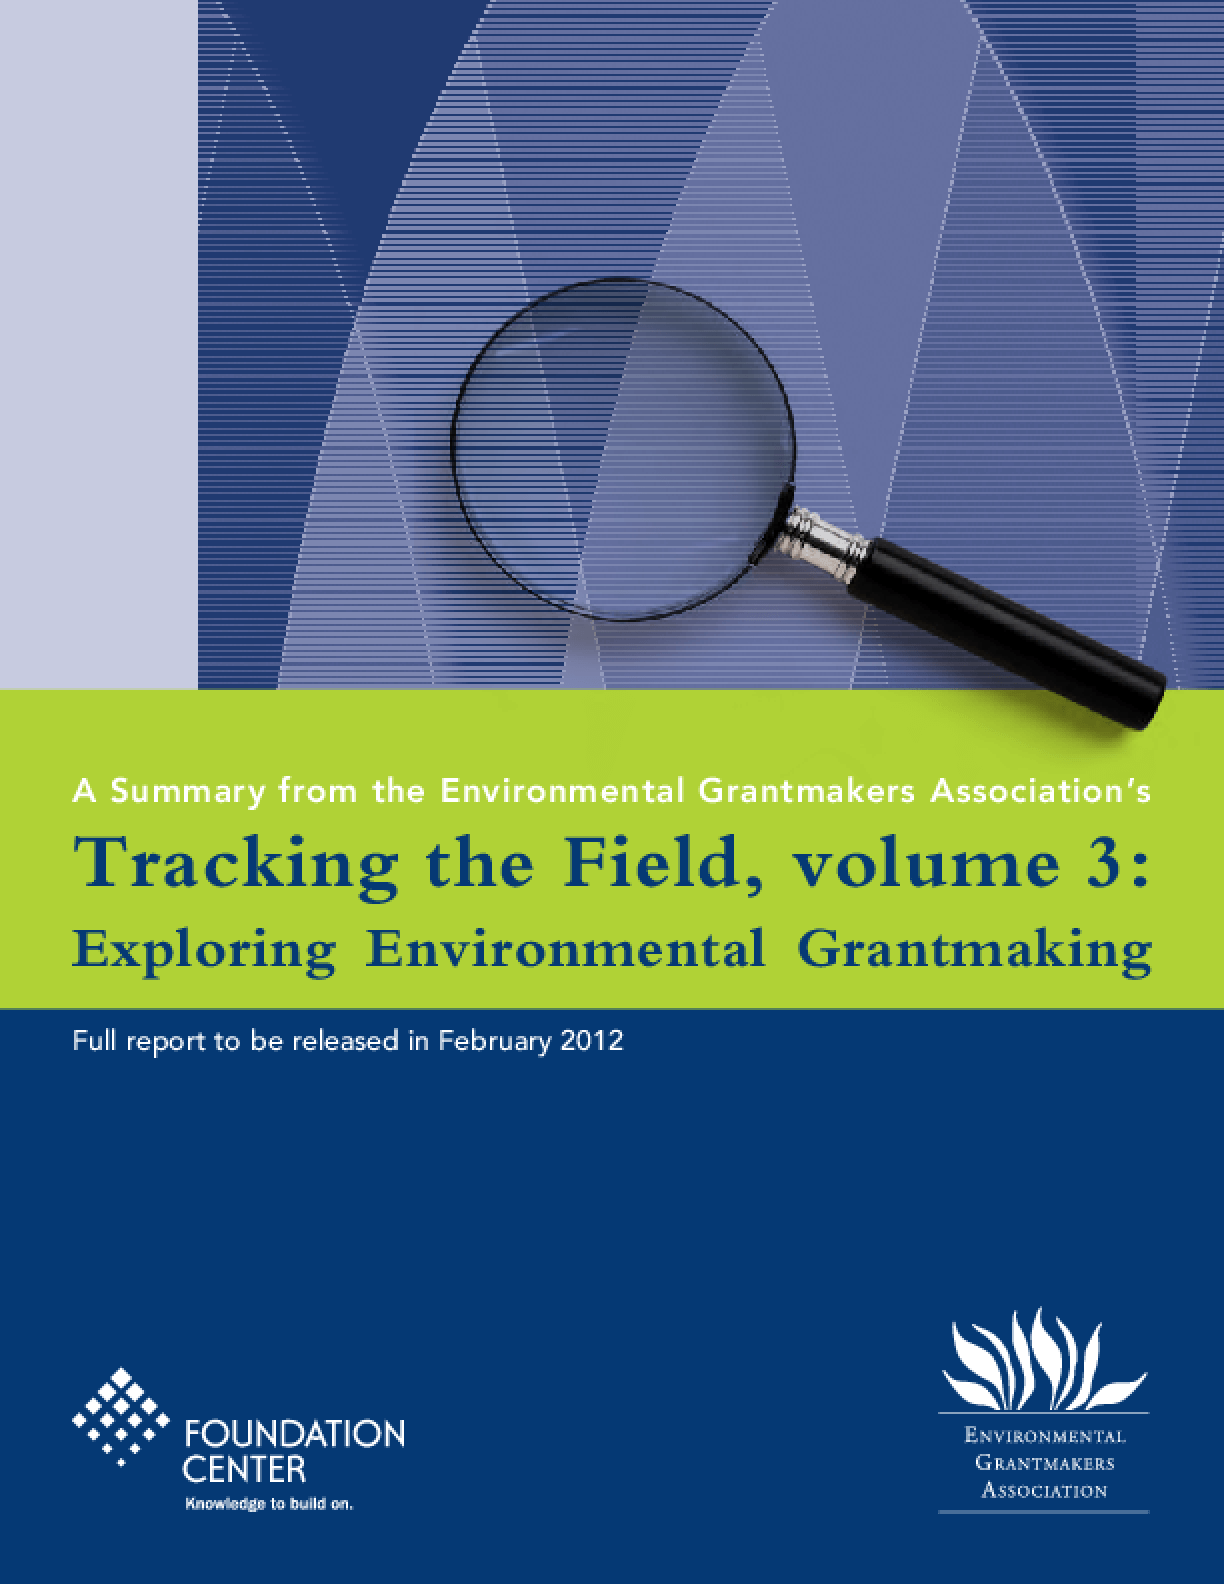 Tracking the Field Volume 3: Exploring Environmental Grantmaking - Executive Summary